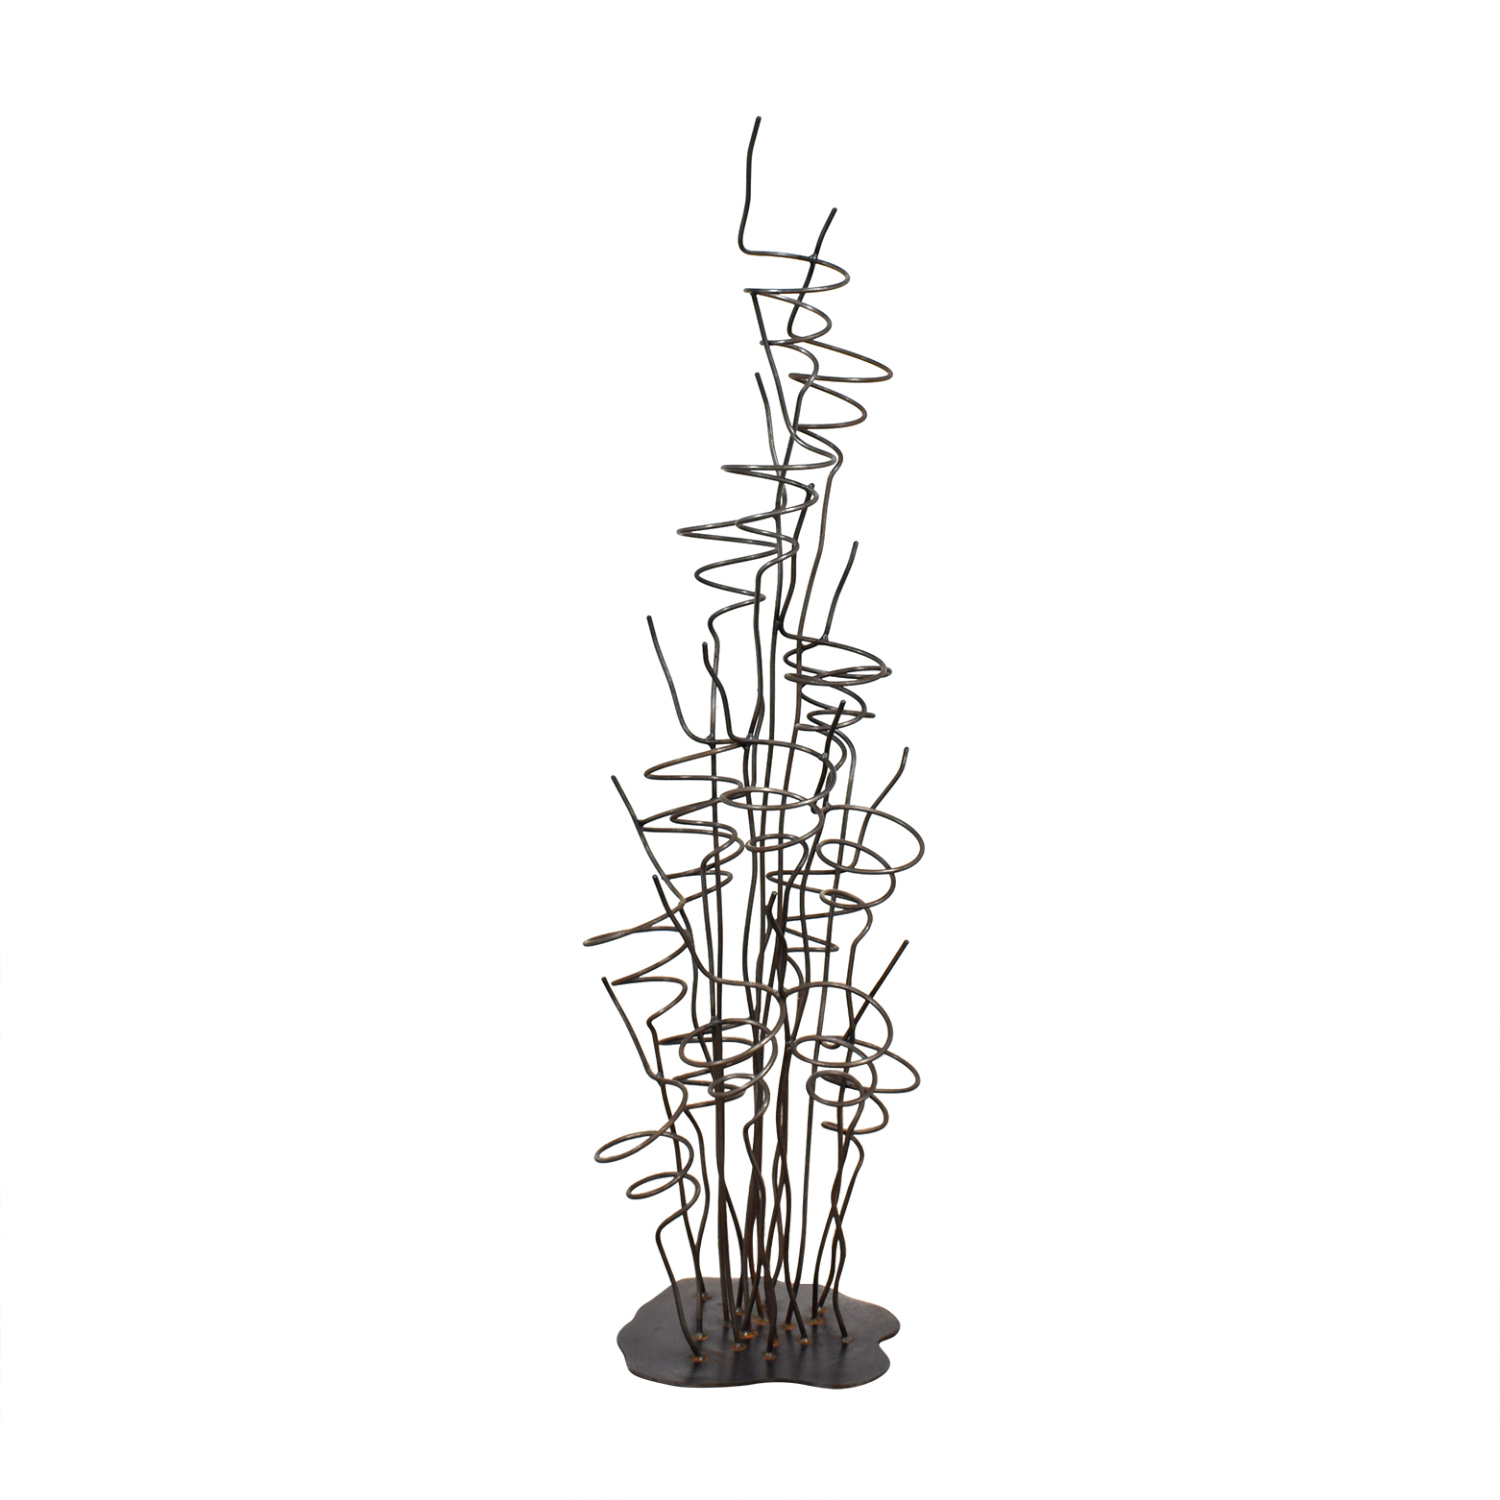 Restoration Hardware Restoration Hardware Abstract Wine Rack for sale